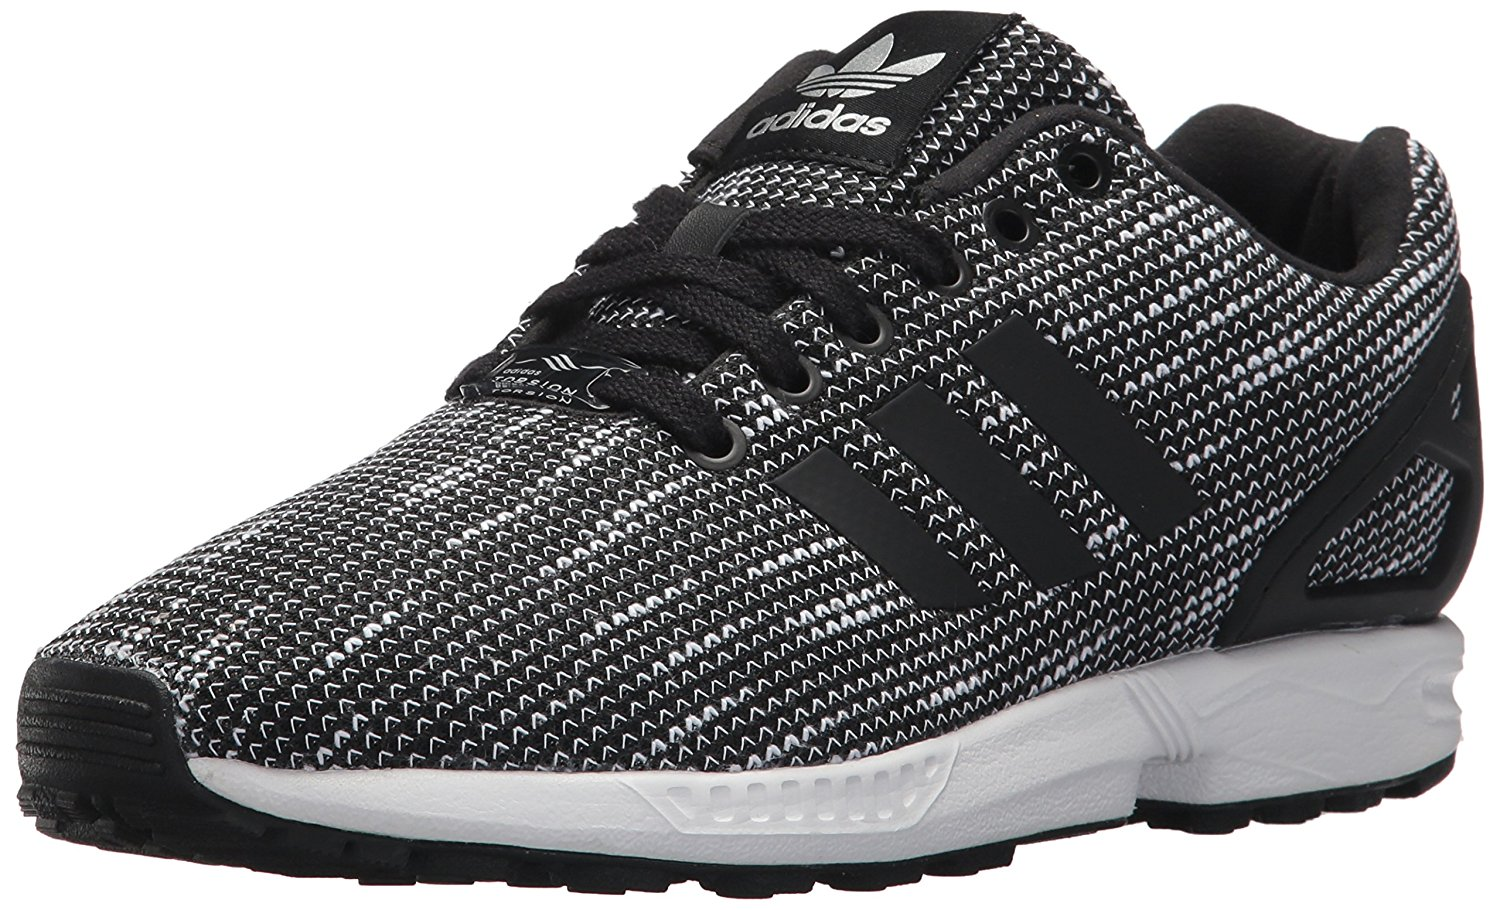 f9eb6c0b3 Adidas ZX Flux Reviewed   Tested for Performance in 2019